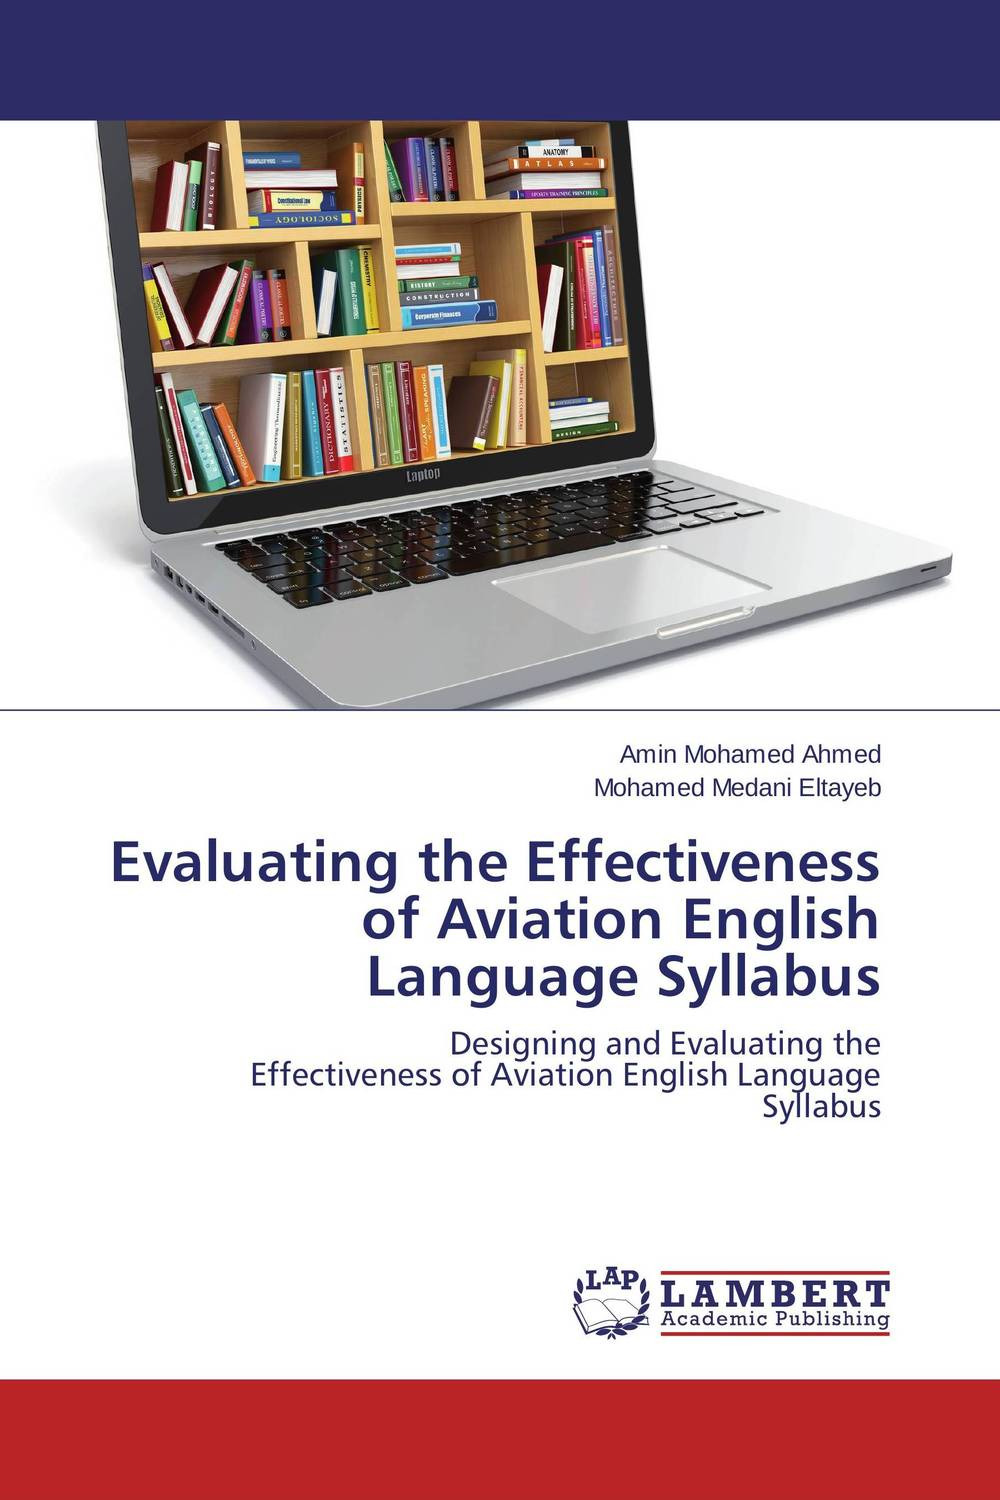 Evaluating the Effectiveness of Aviation English Language Syllabus samsung ue28j4100ak